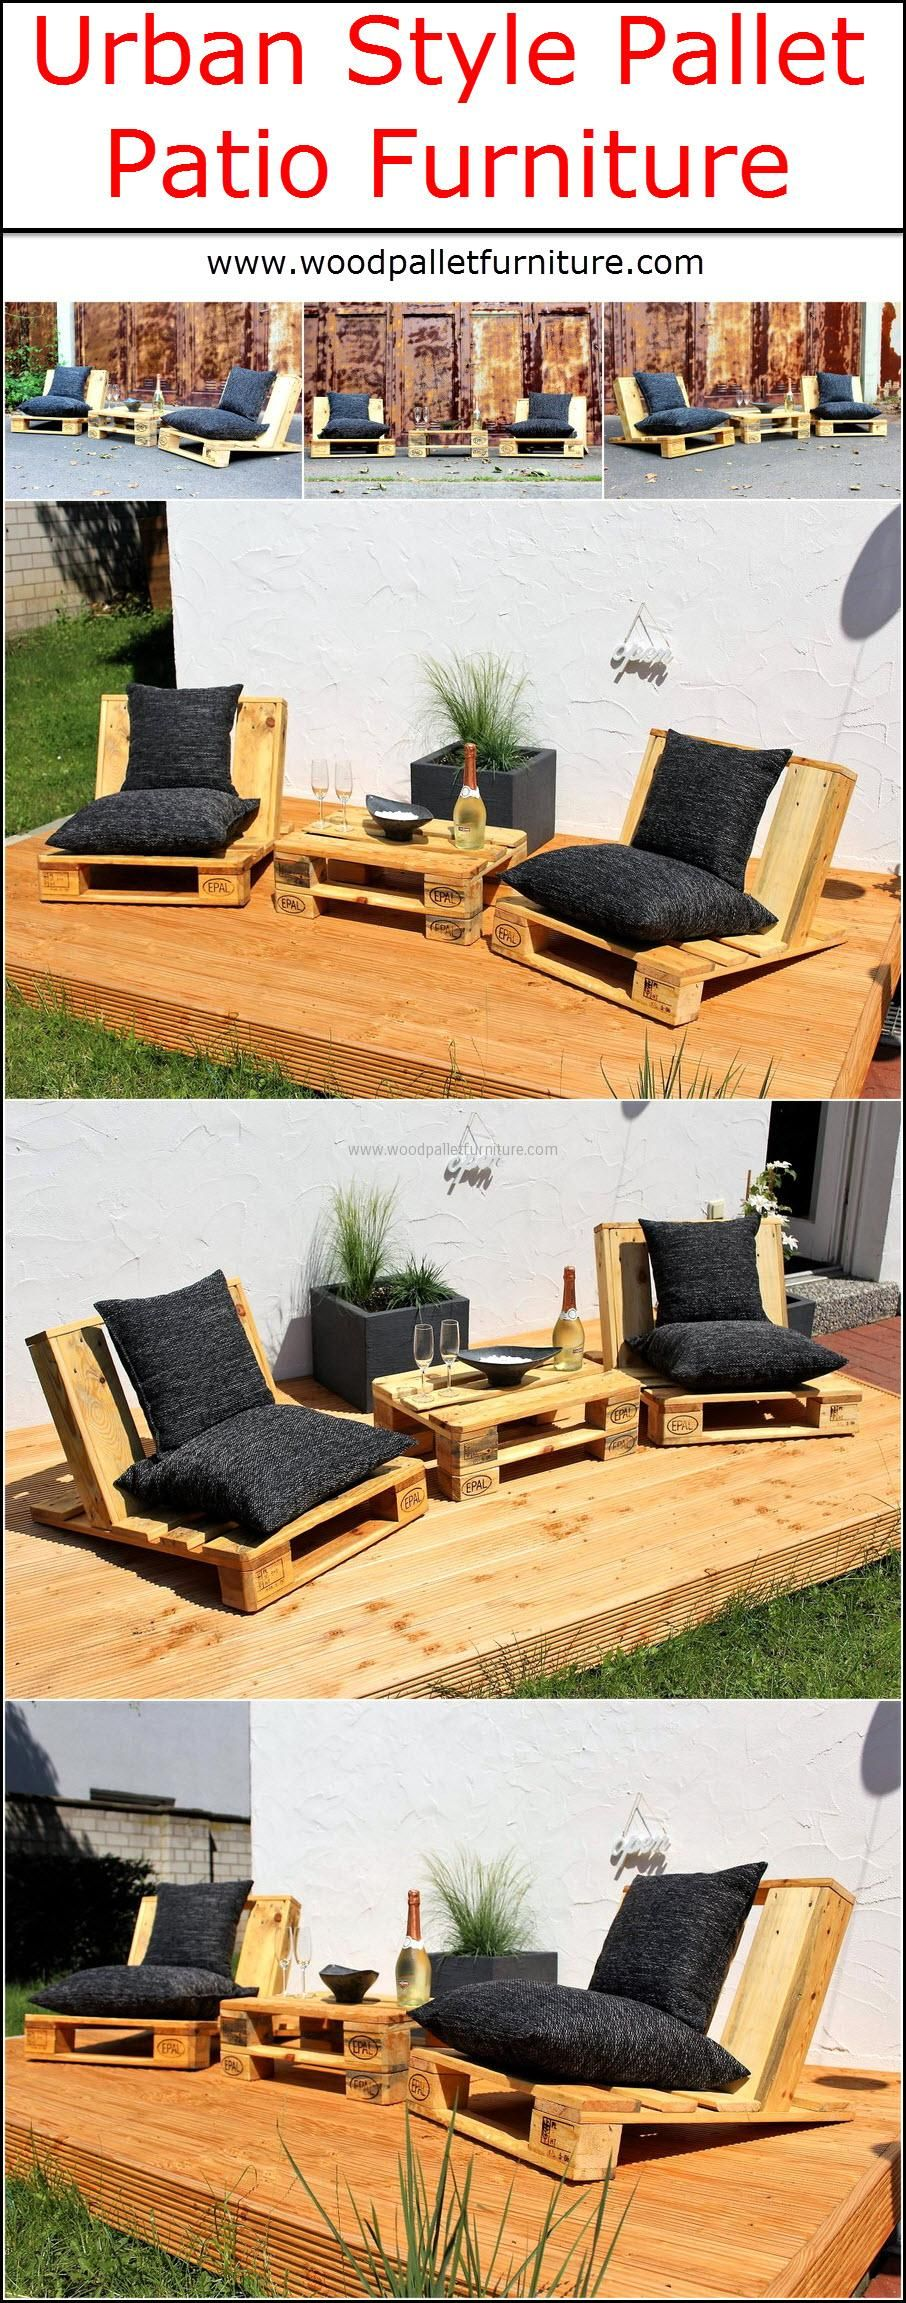 There Are Many Attractive Styles To Create The Patio Furniture But Urban Style Reclaimed